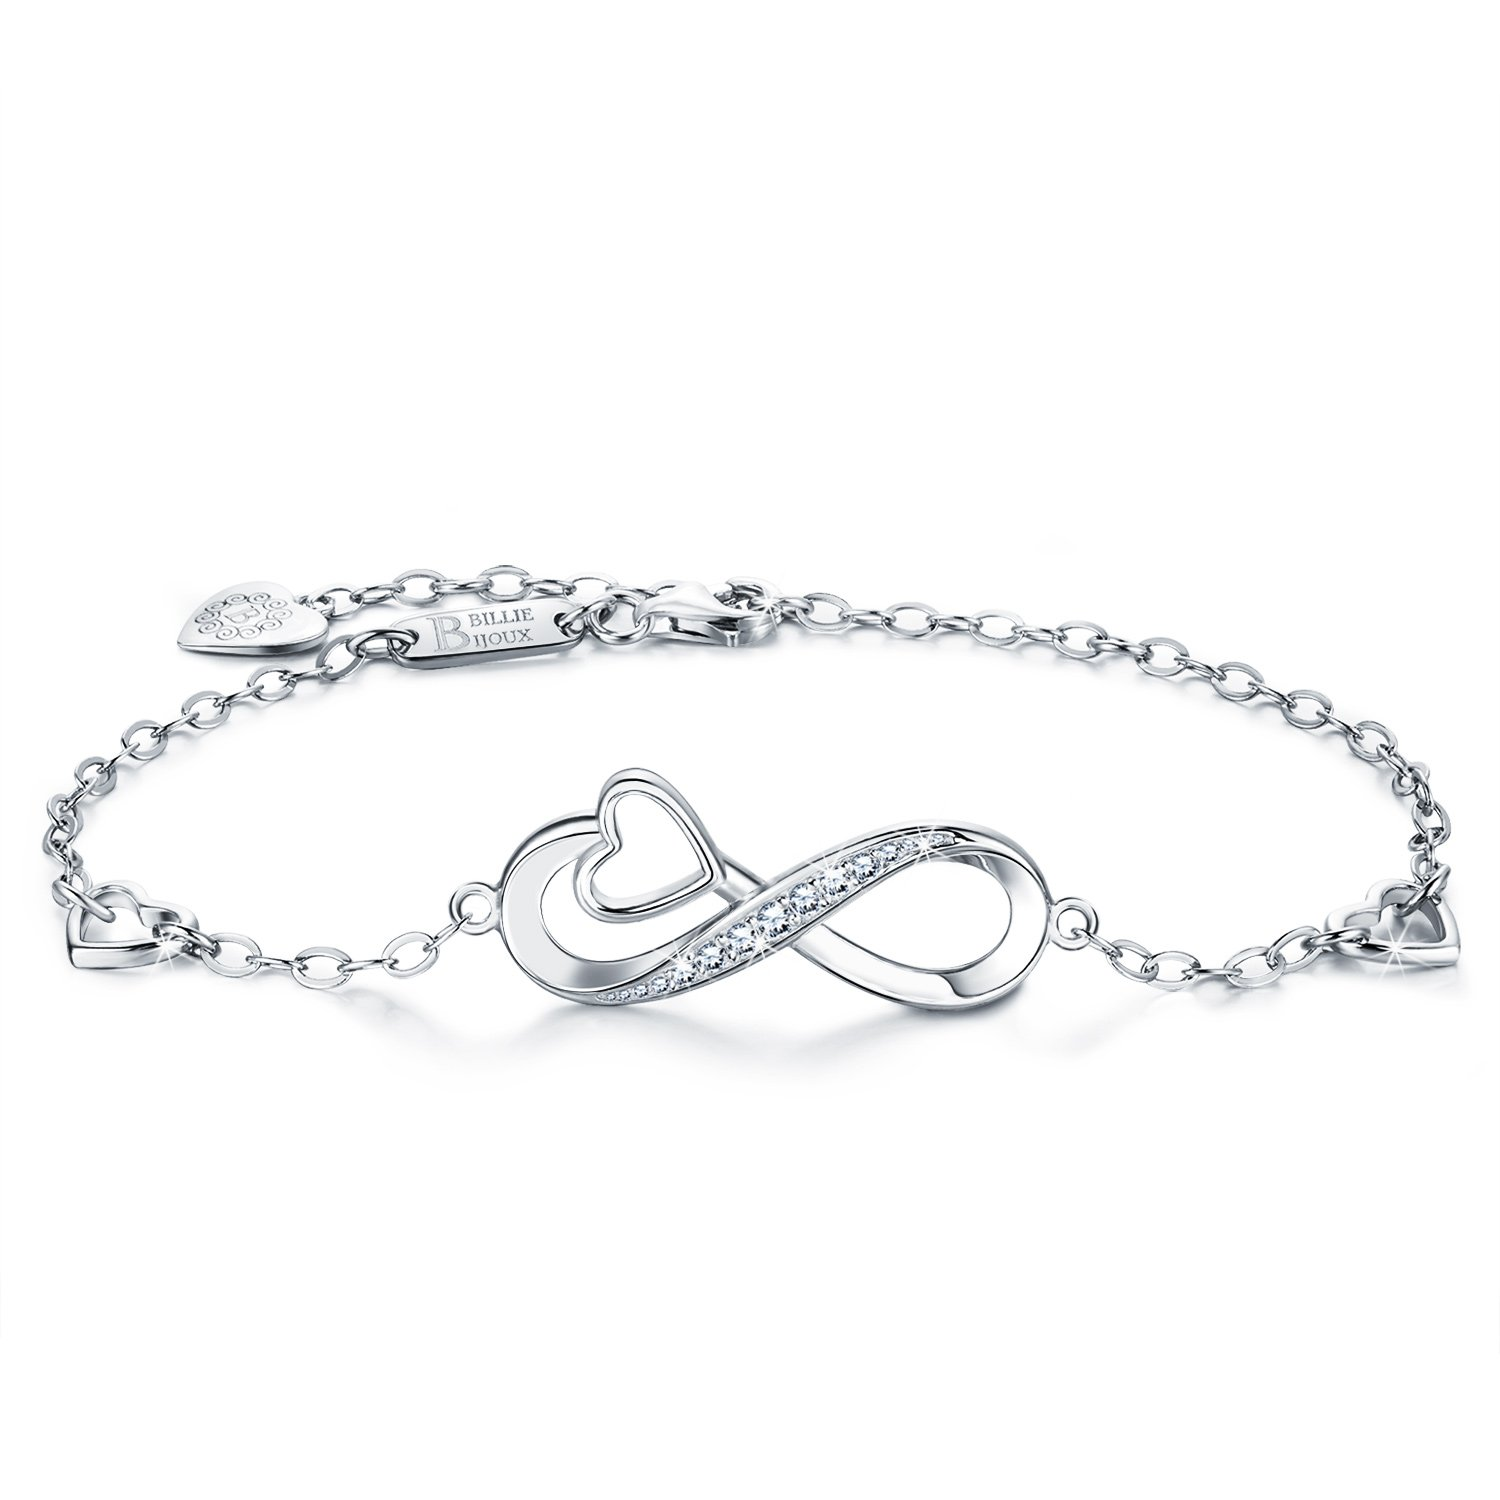 Billie Bijoux 925 Sterling Silver Infinity Heart Endless Love Symbol Charm Adjustable Bracelet White Gold Plated Women' s Gift for Graduation Birthday Valentine's Christmas Day